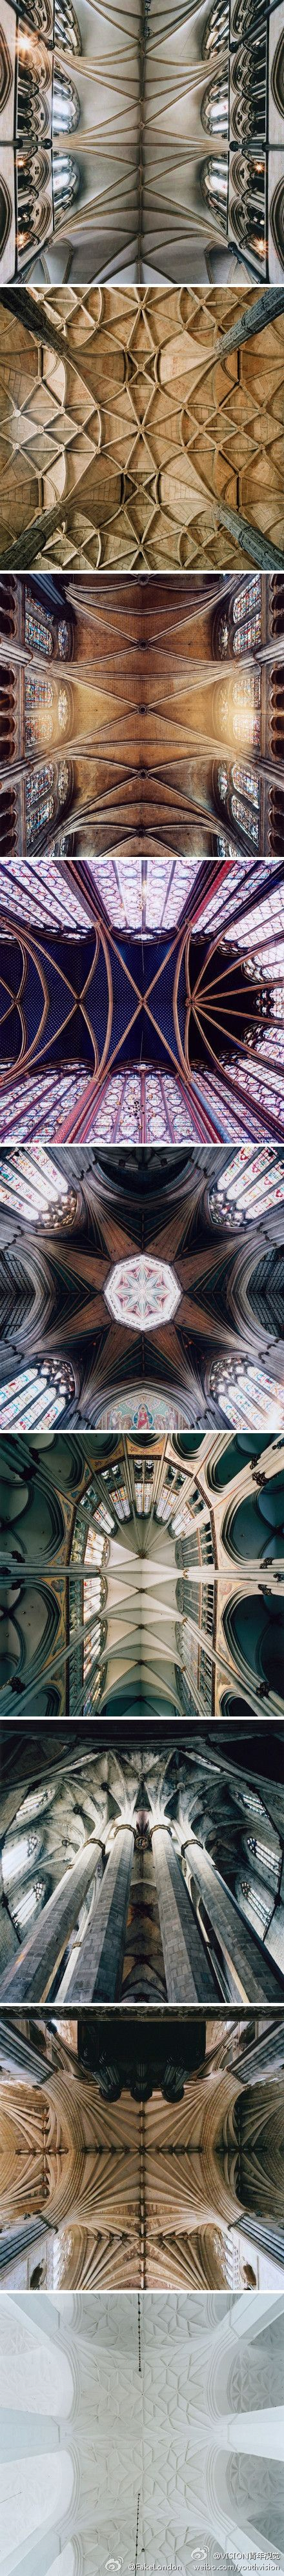 Cathedrals: Gothic Cathedrals, Architectural Kaleidoscopes, Gothic Architecture, Cathedrals Architecture, Kaleidoscope Cathedrals, Churches Cathedrals, Architecture Design, Patterns Cathedrals